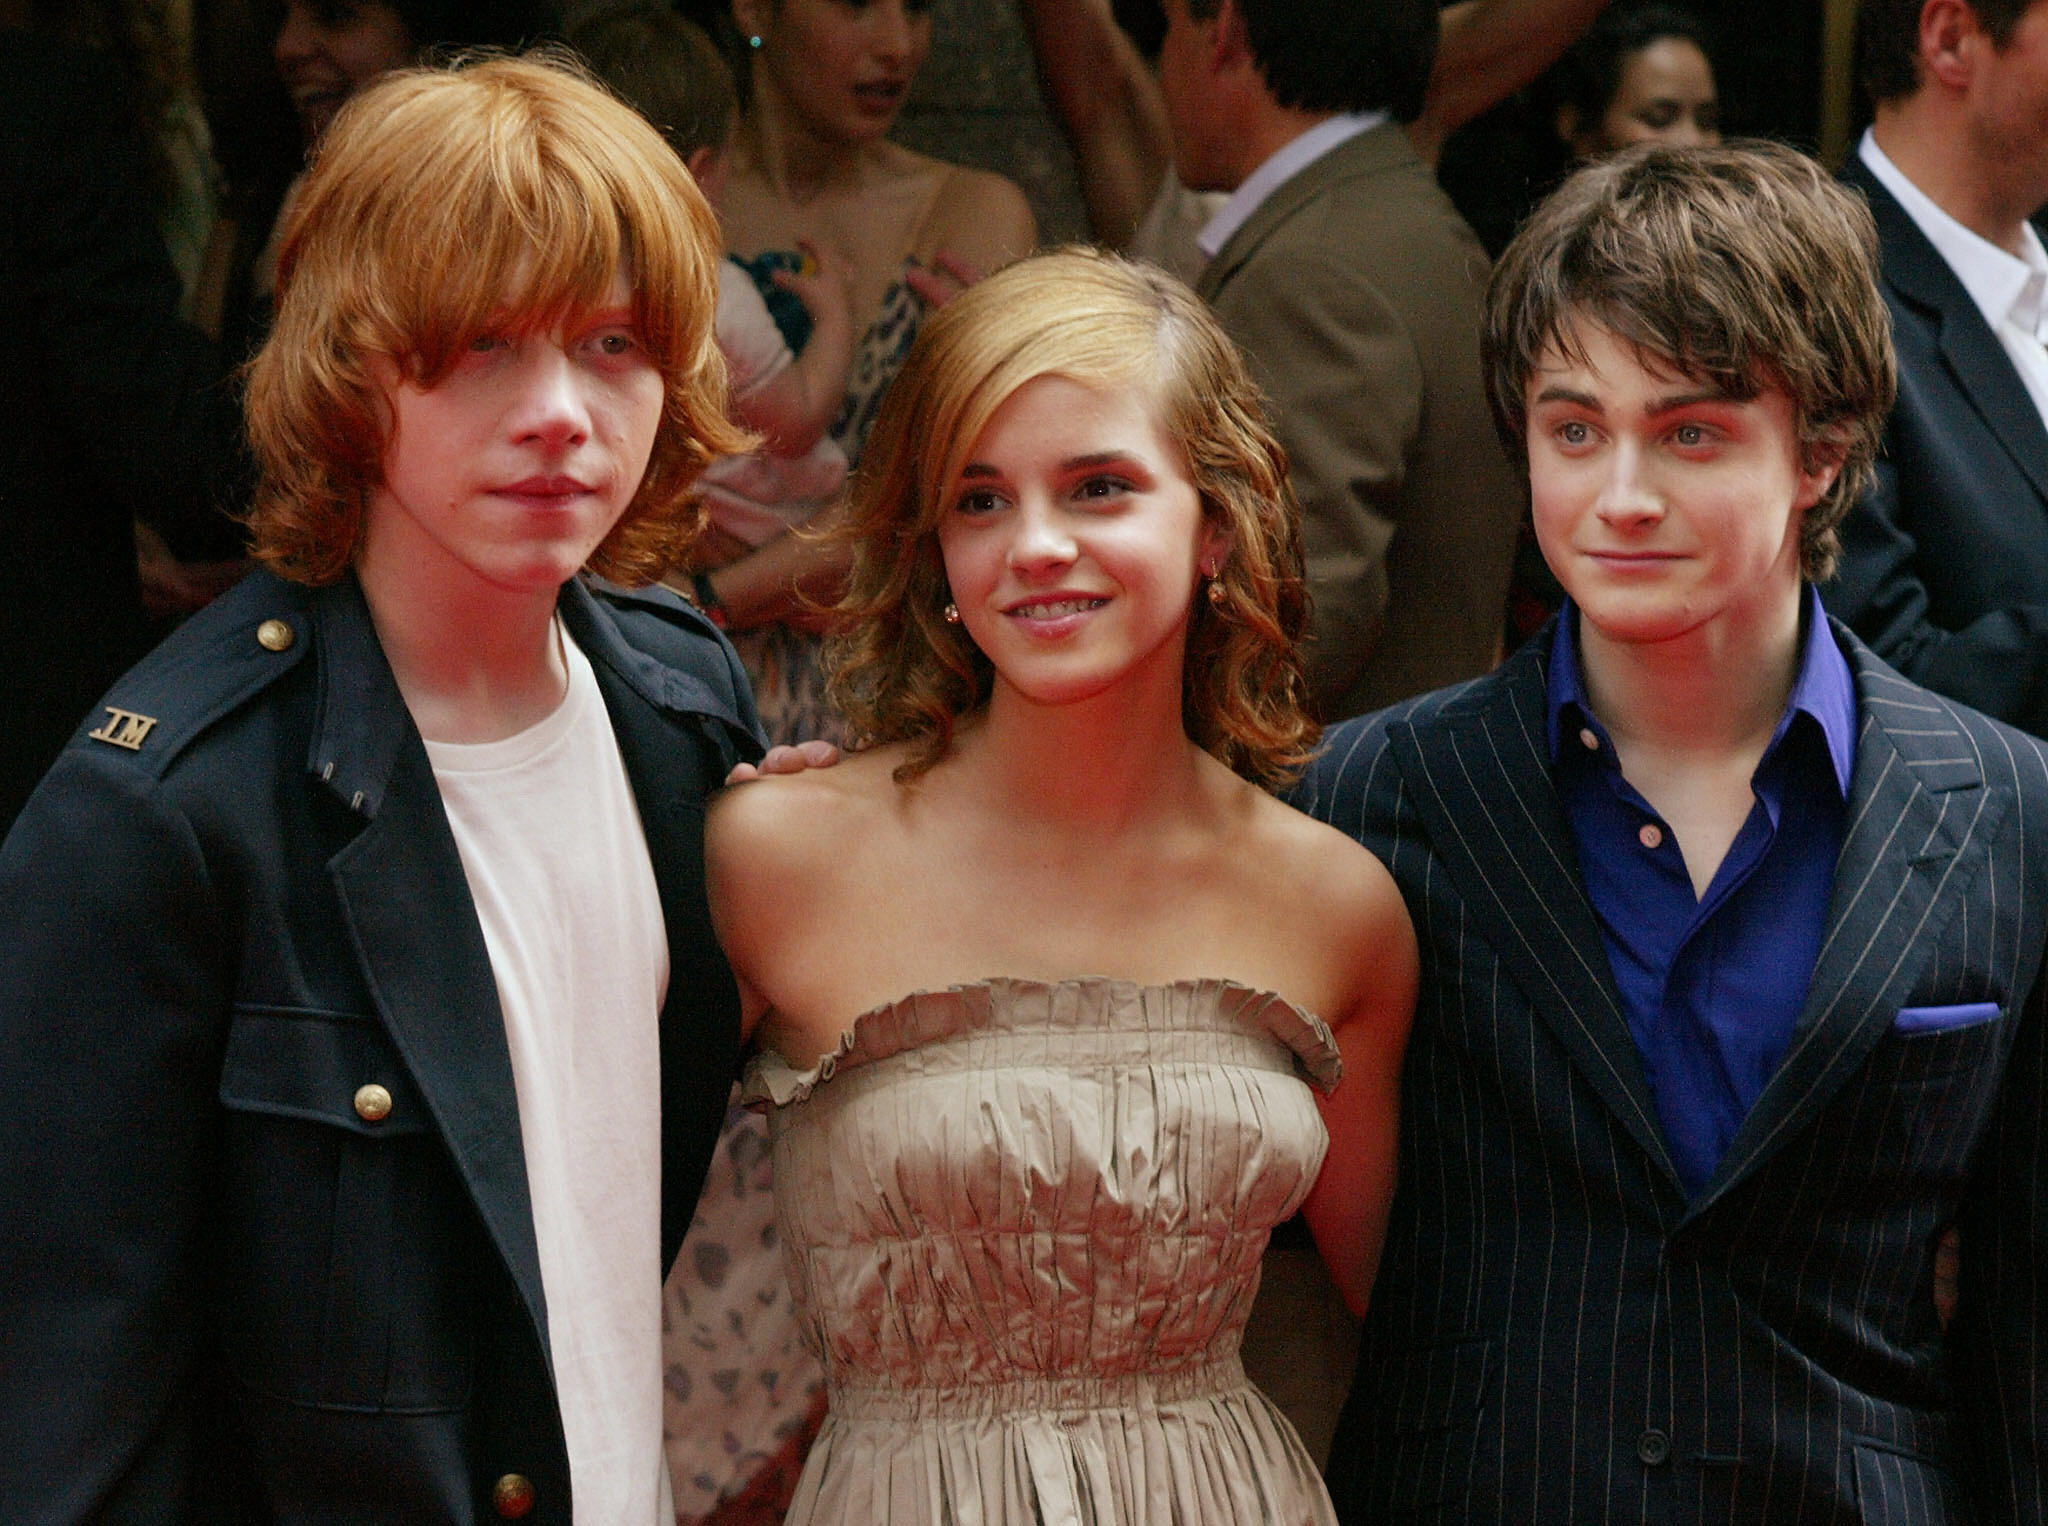 What are Harry Potter actors spending their business dividends on? 41